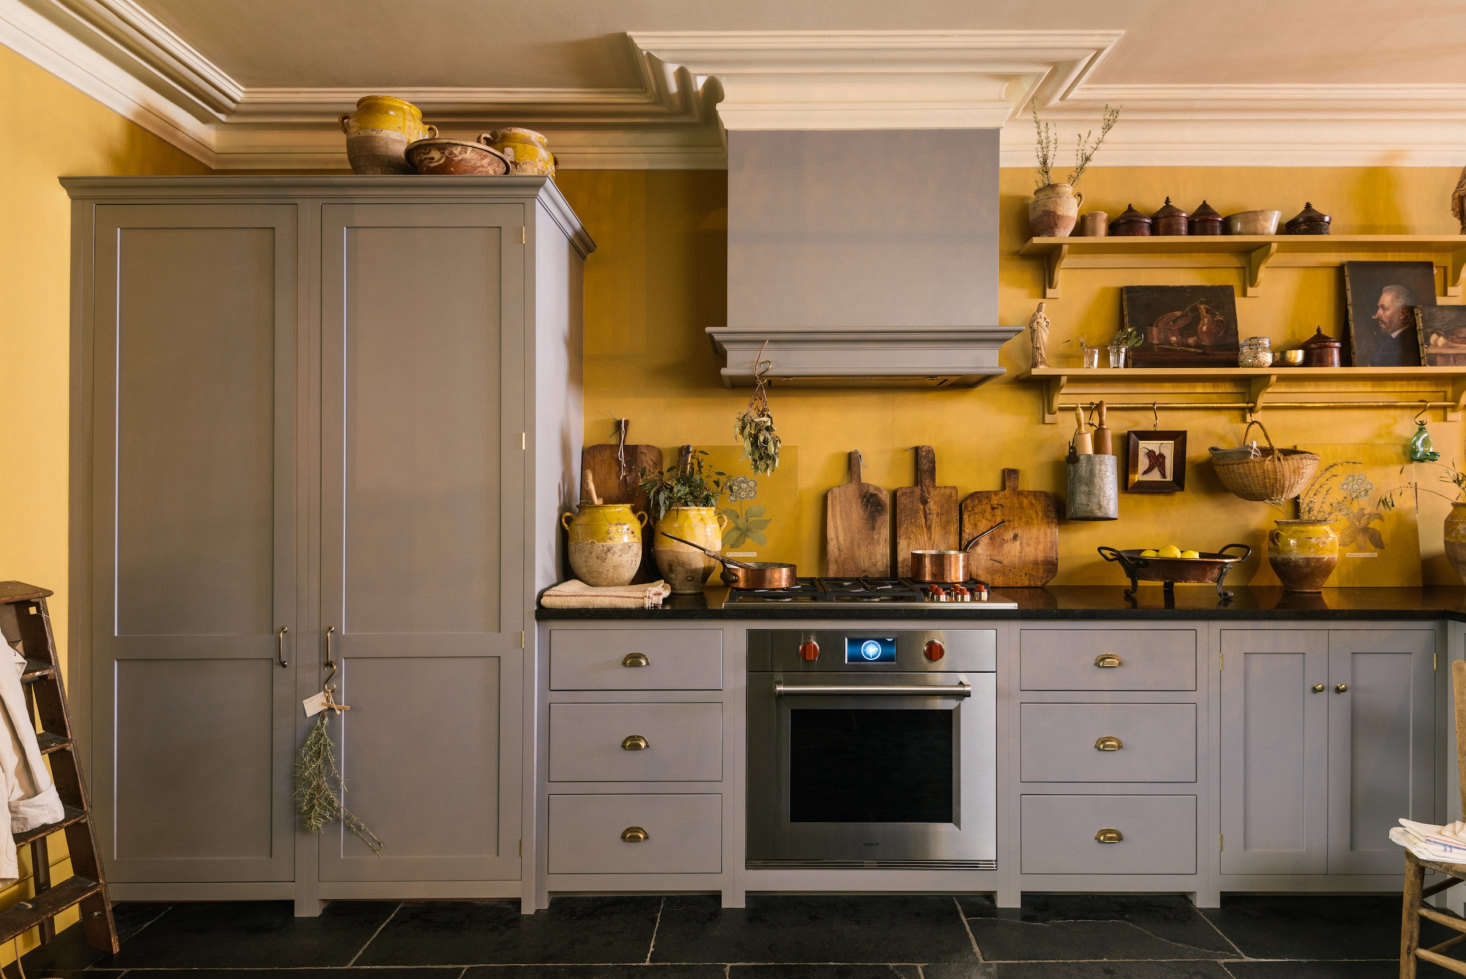 Kitchen of the Week: Shaker in the City